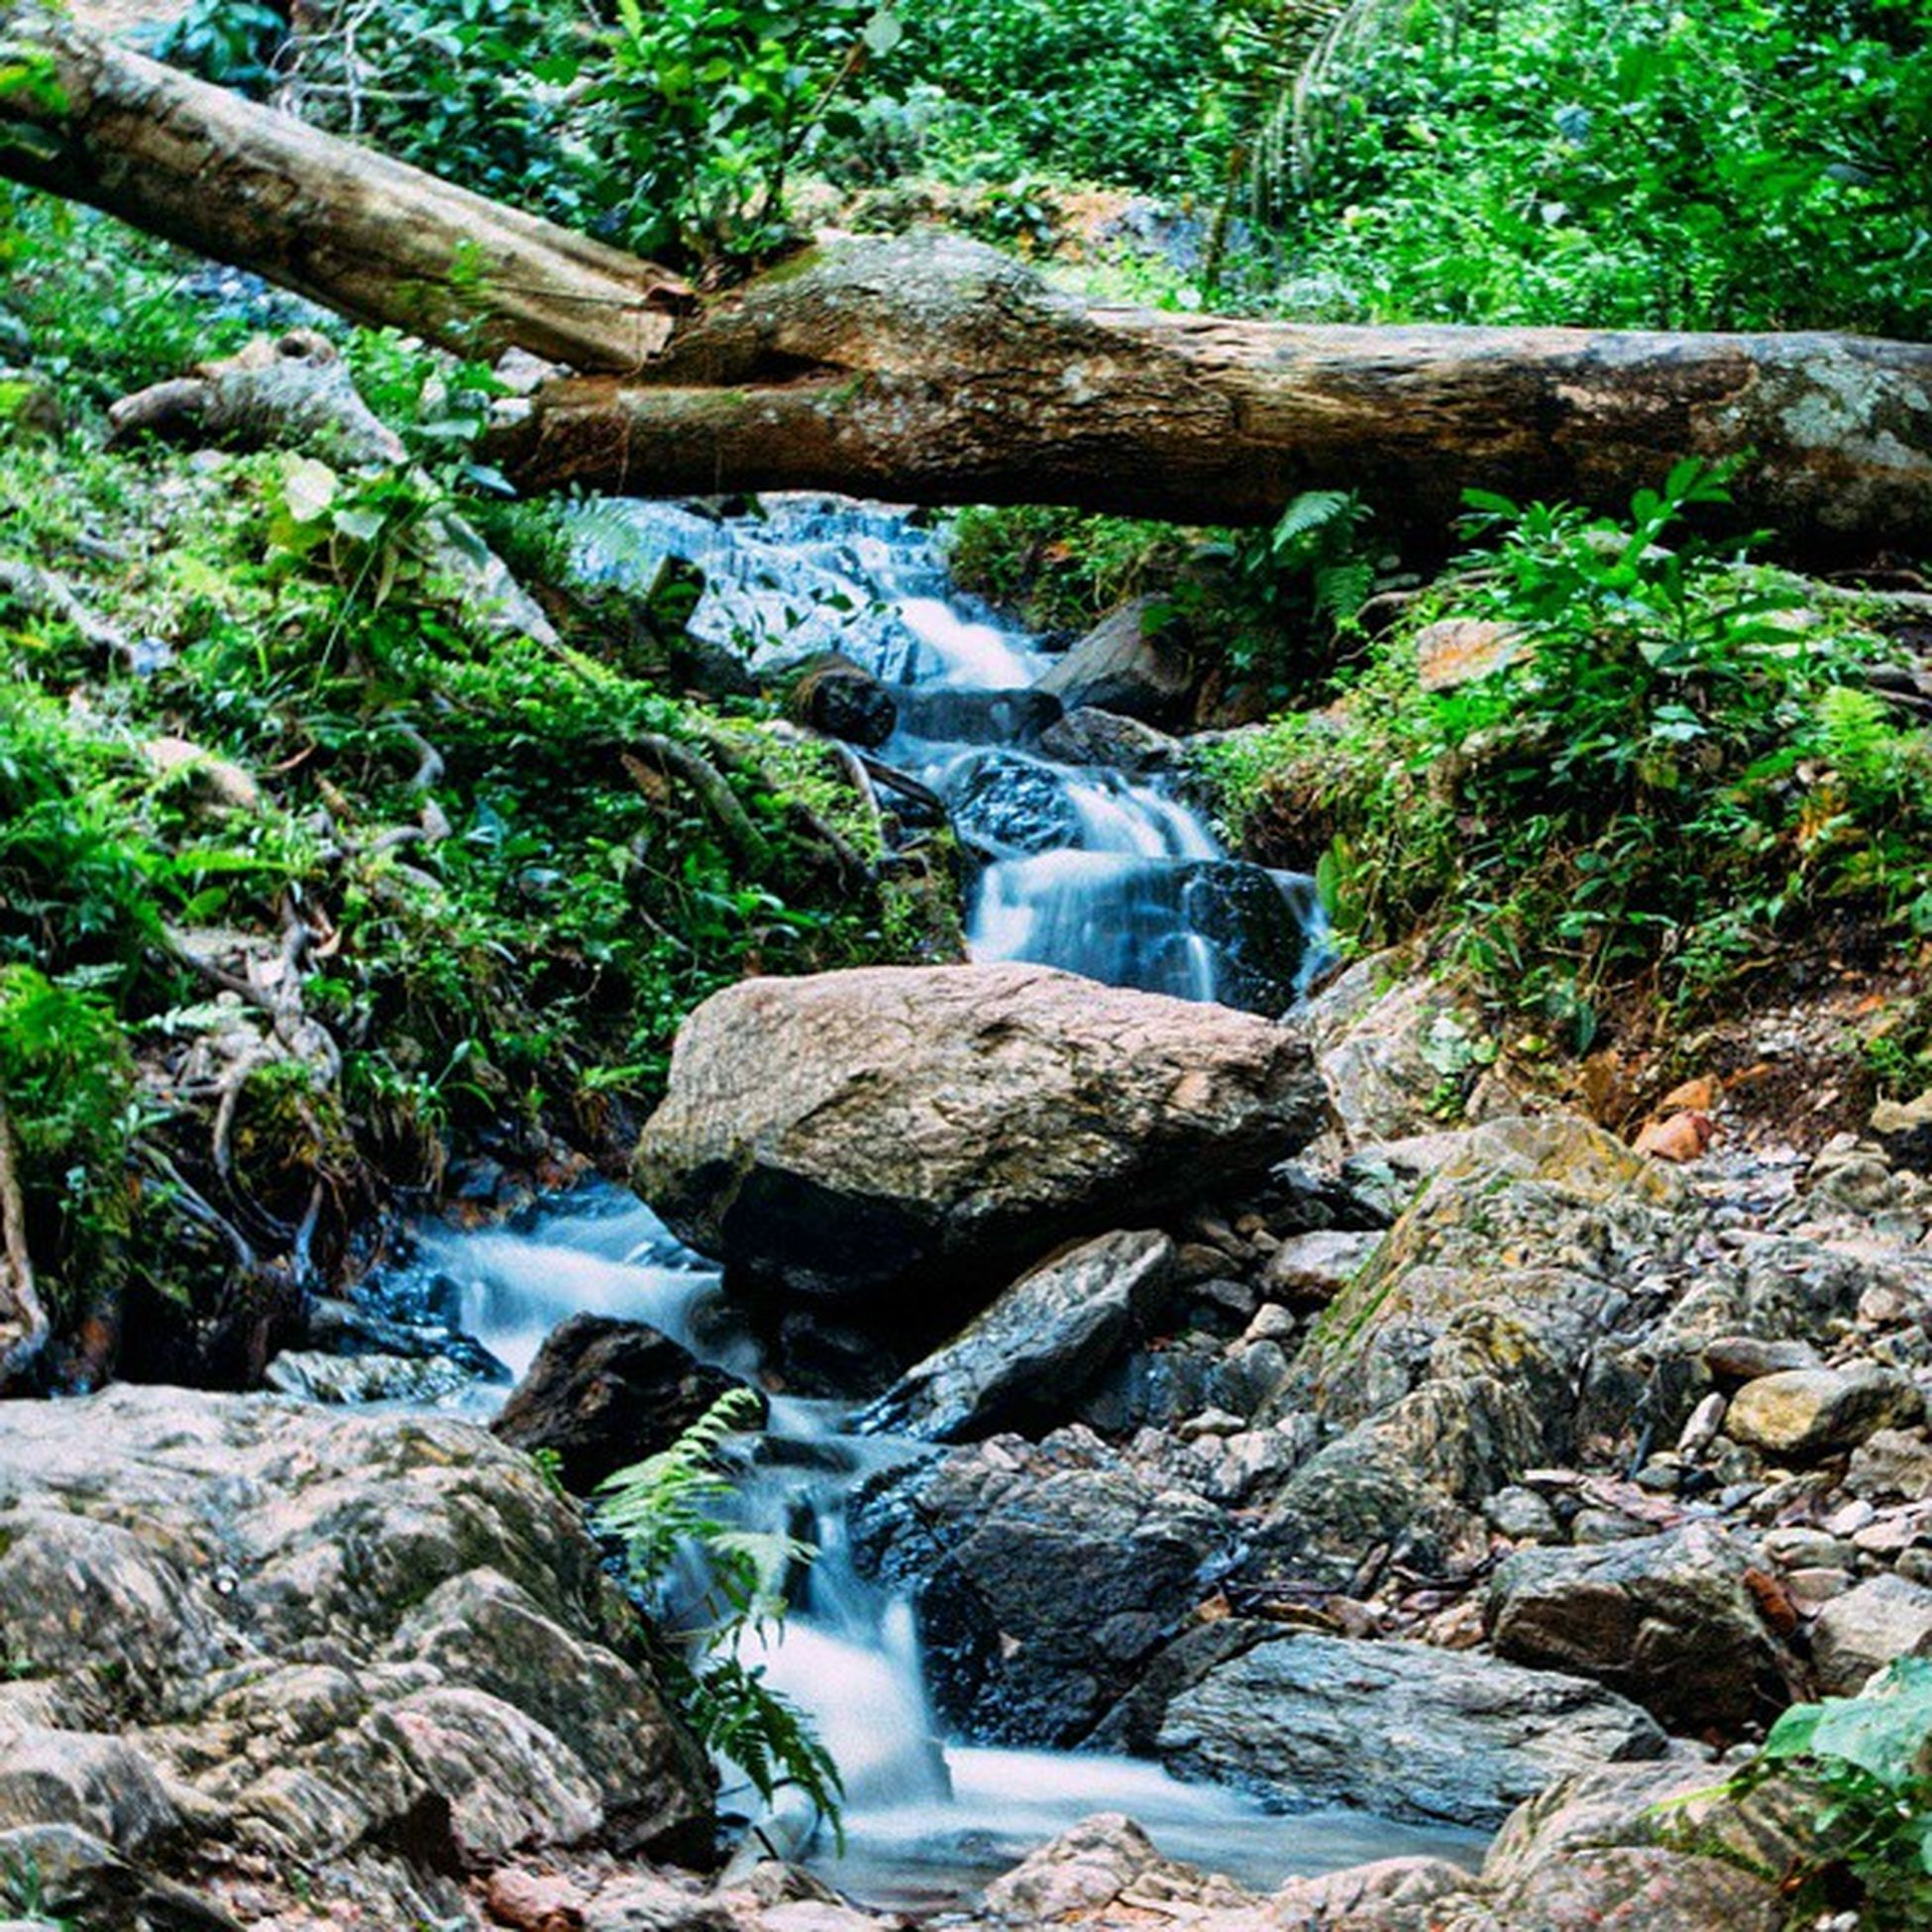 The warm springs of Ikogosi near Akure in OndoState . The place is very well maintained and has a very calming feel to it. Nigeria snapitoga Africa waterfalls travel travelinNigeria